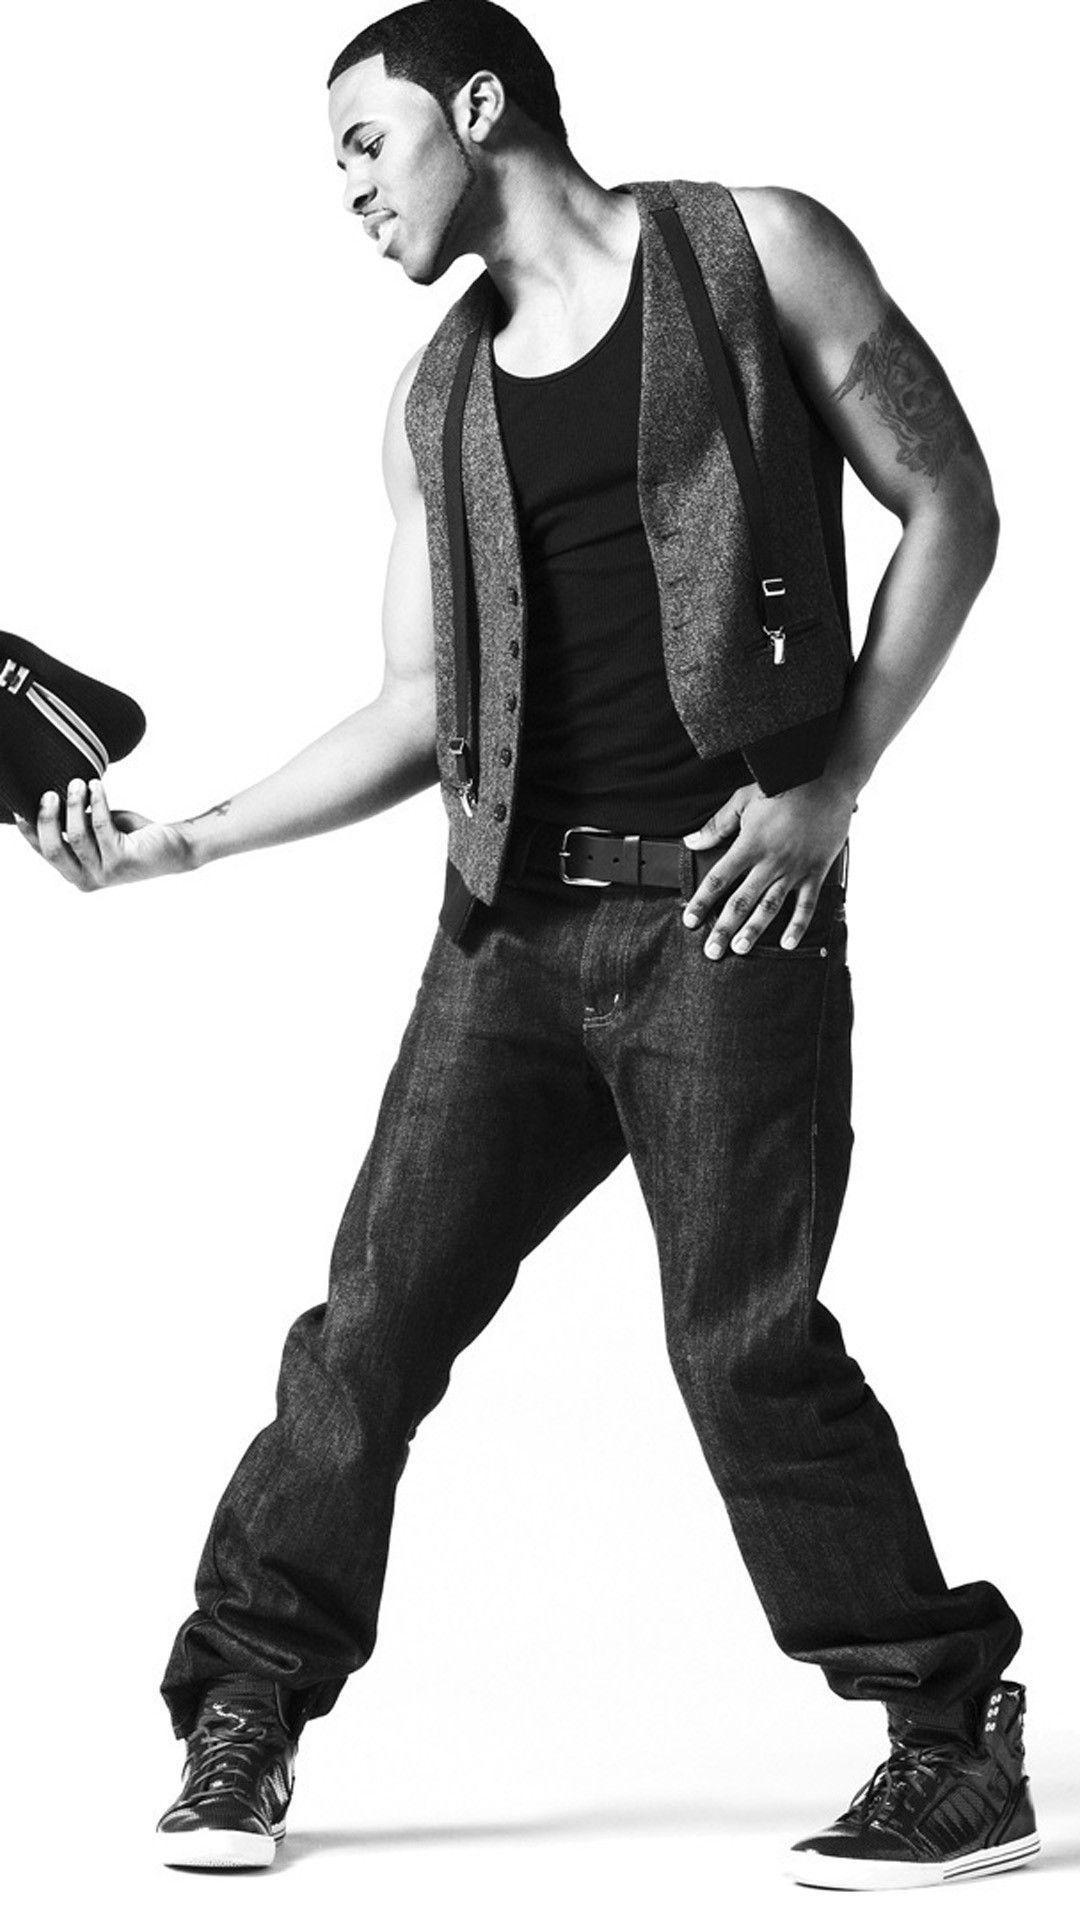 jason derulo iphone 5 wallpaper